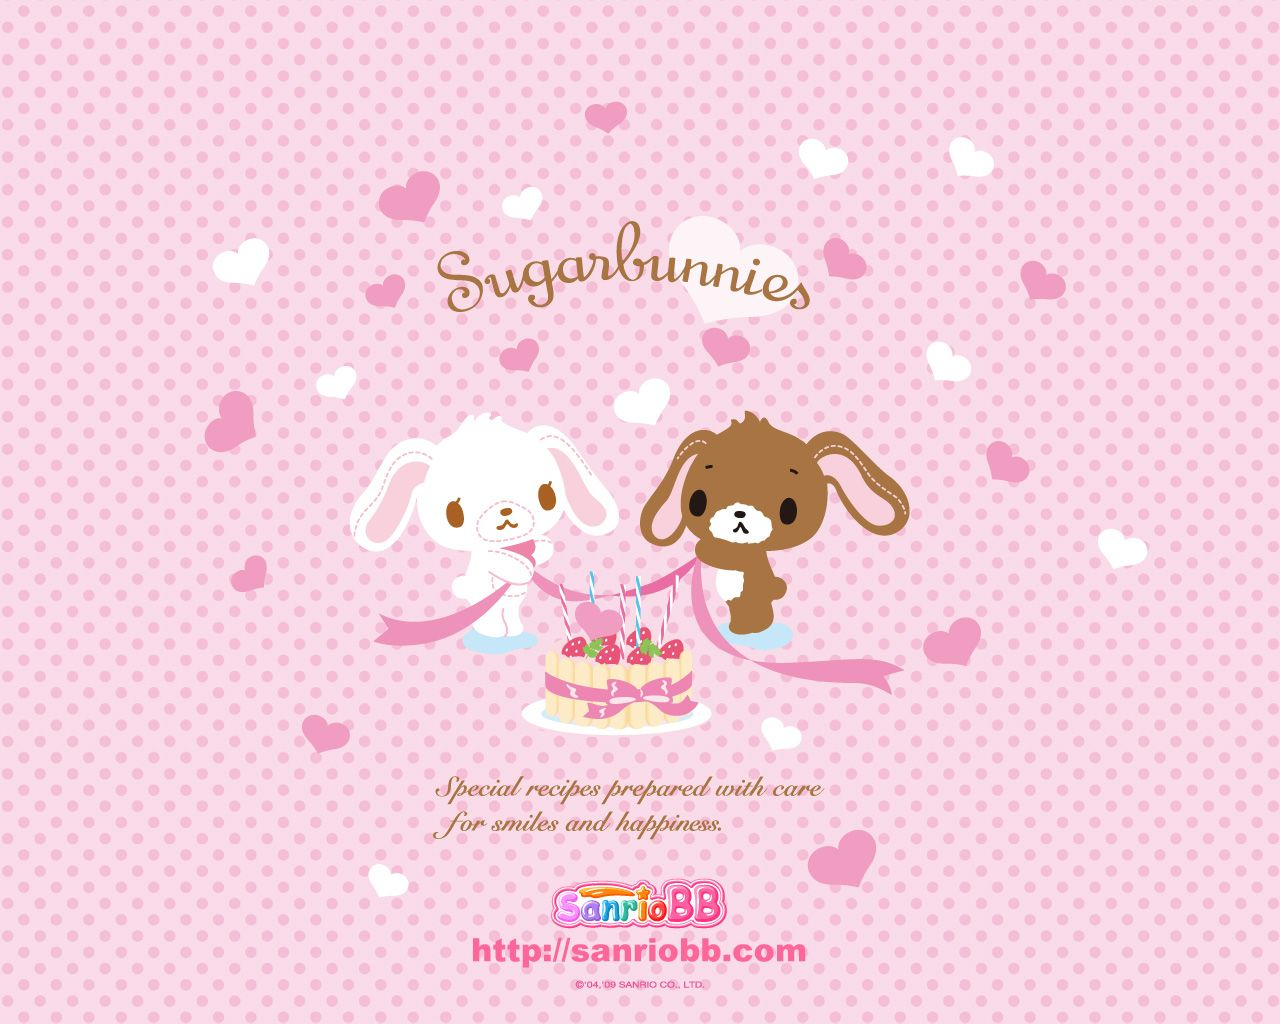 Sugar Bunnies Wallpaper Wallpapersafari Sanrio Wallpaper